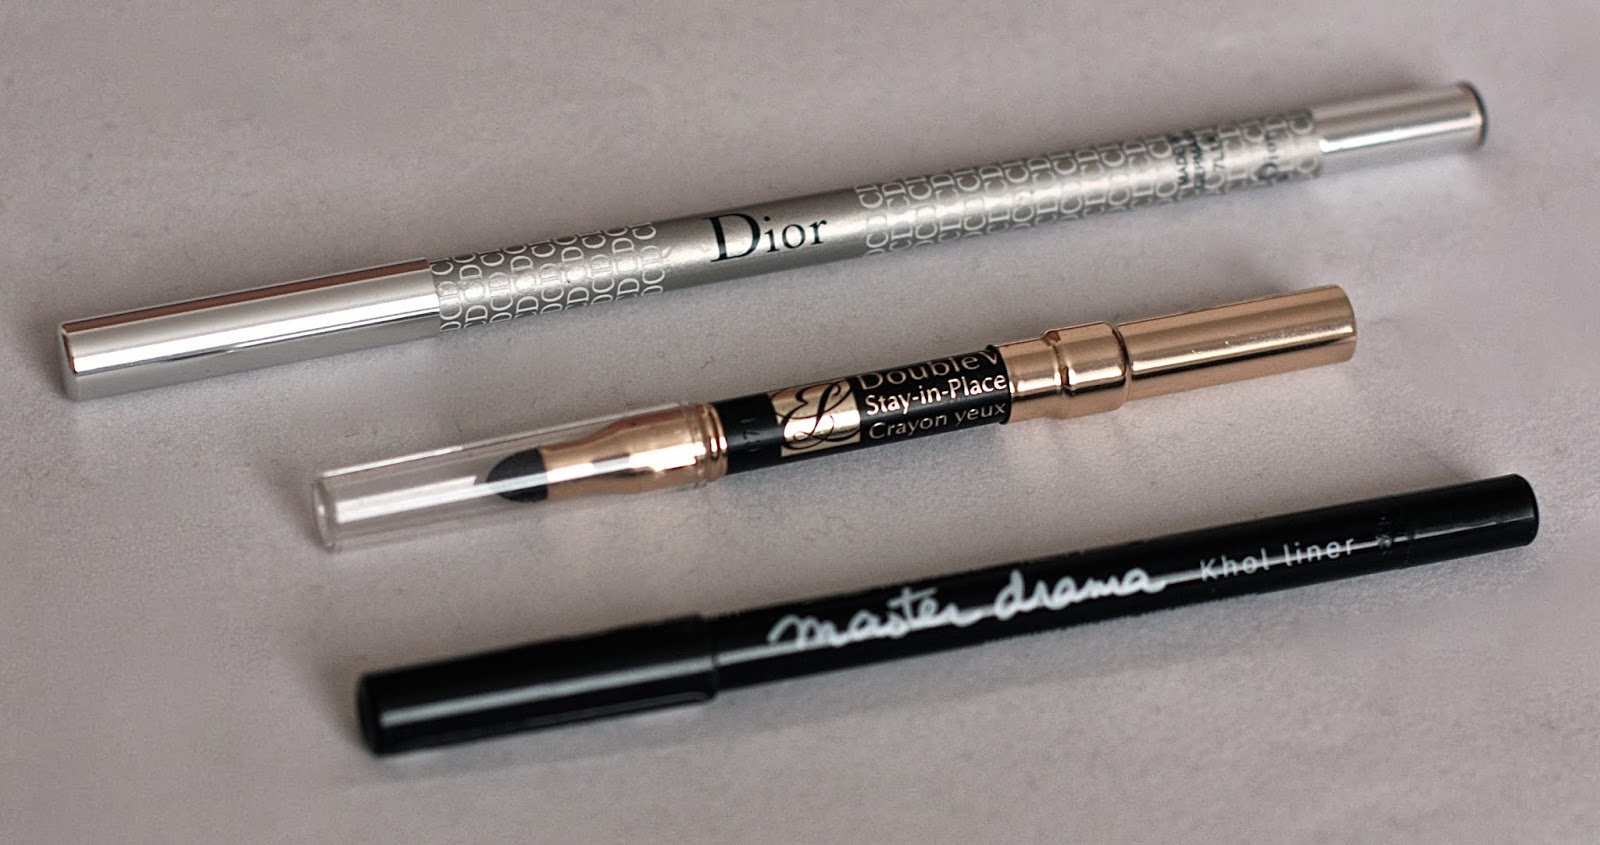 Dior, Estee Lauder and Maybelline eye liners